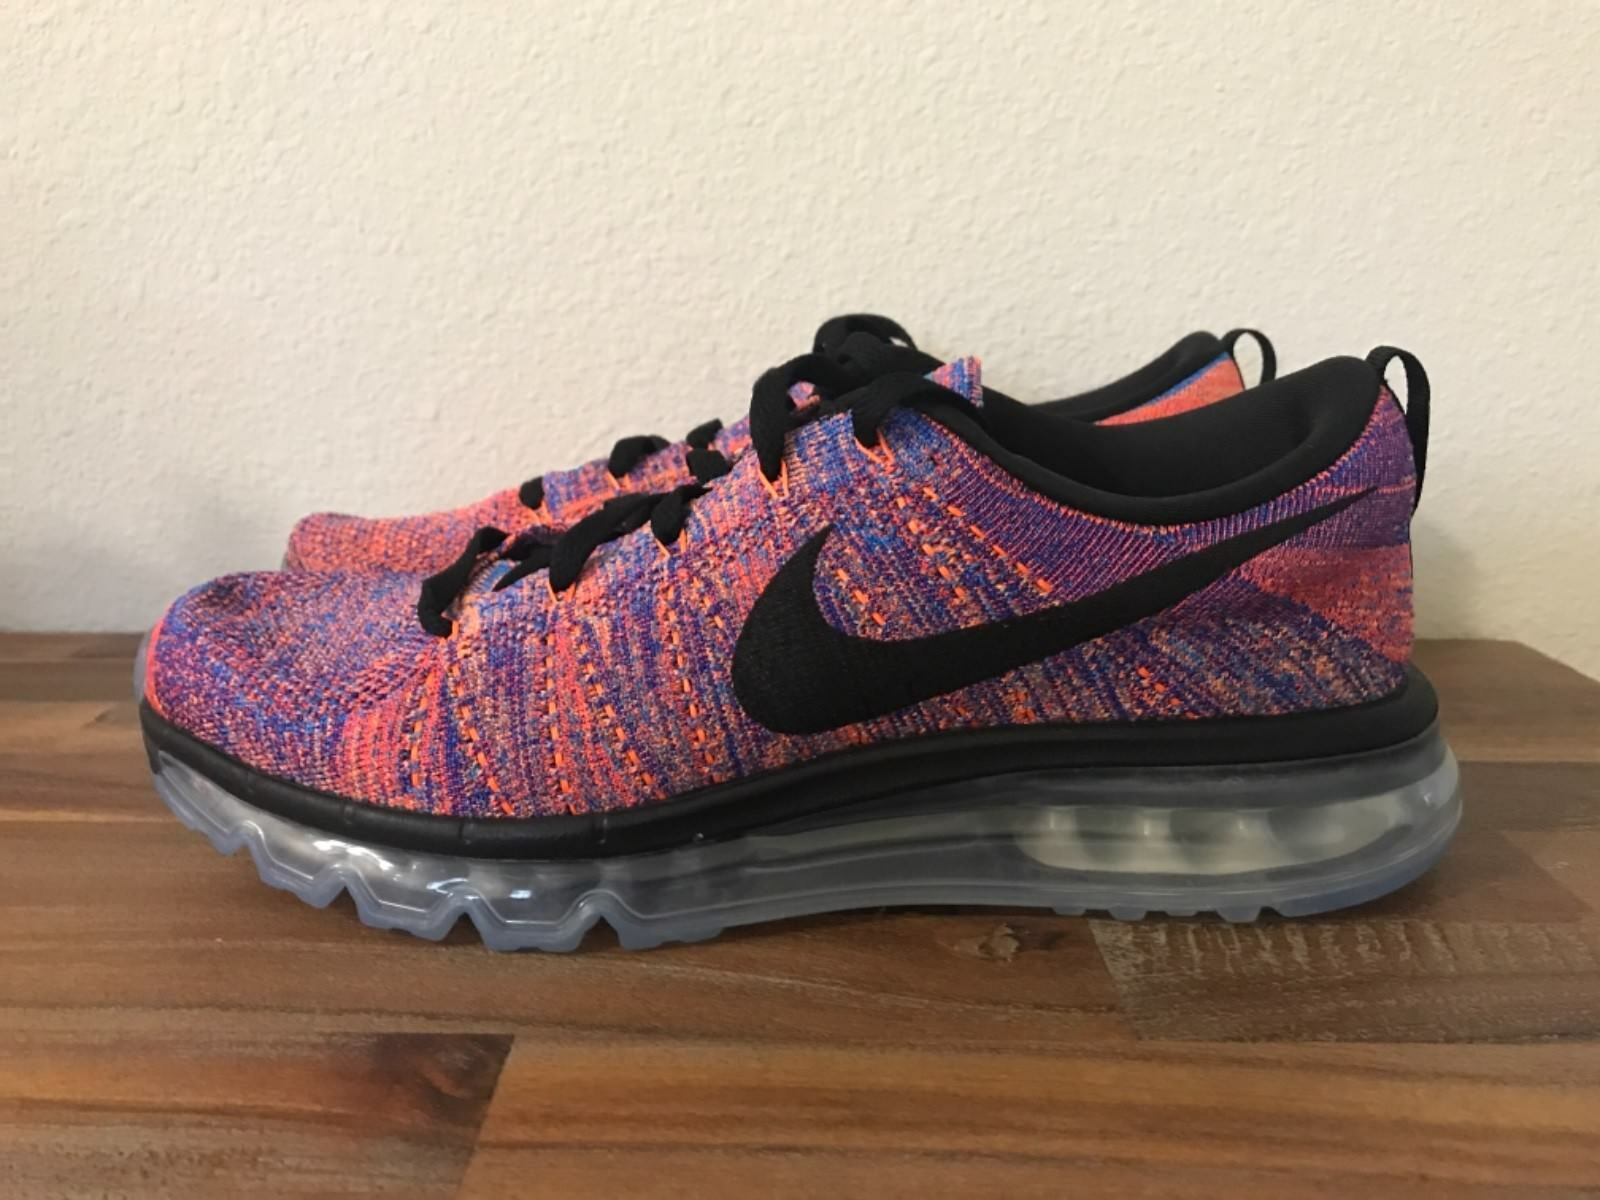 Nike Flyknit Air Max  Multi-Color 620469-404 Sz 9.5, 10.5, 11.5